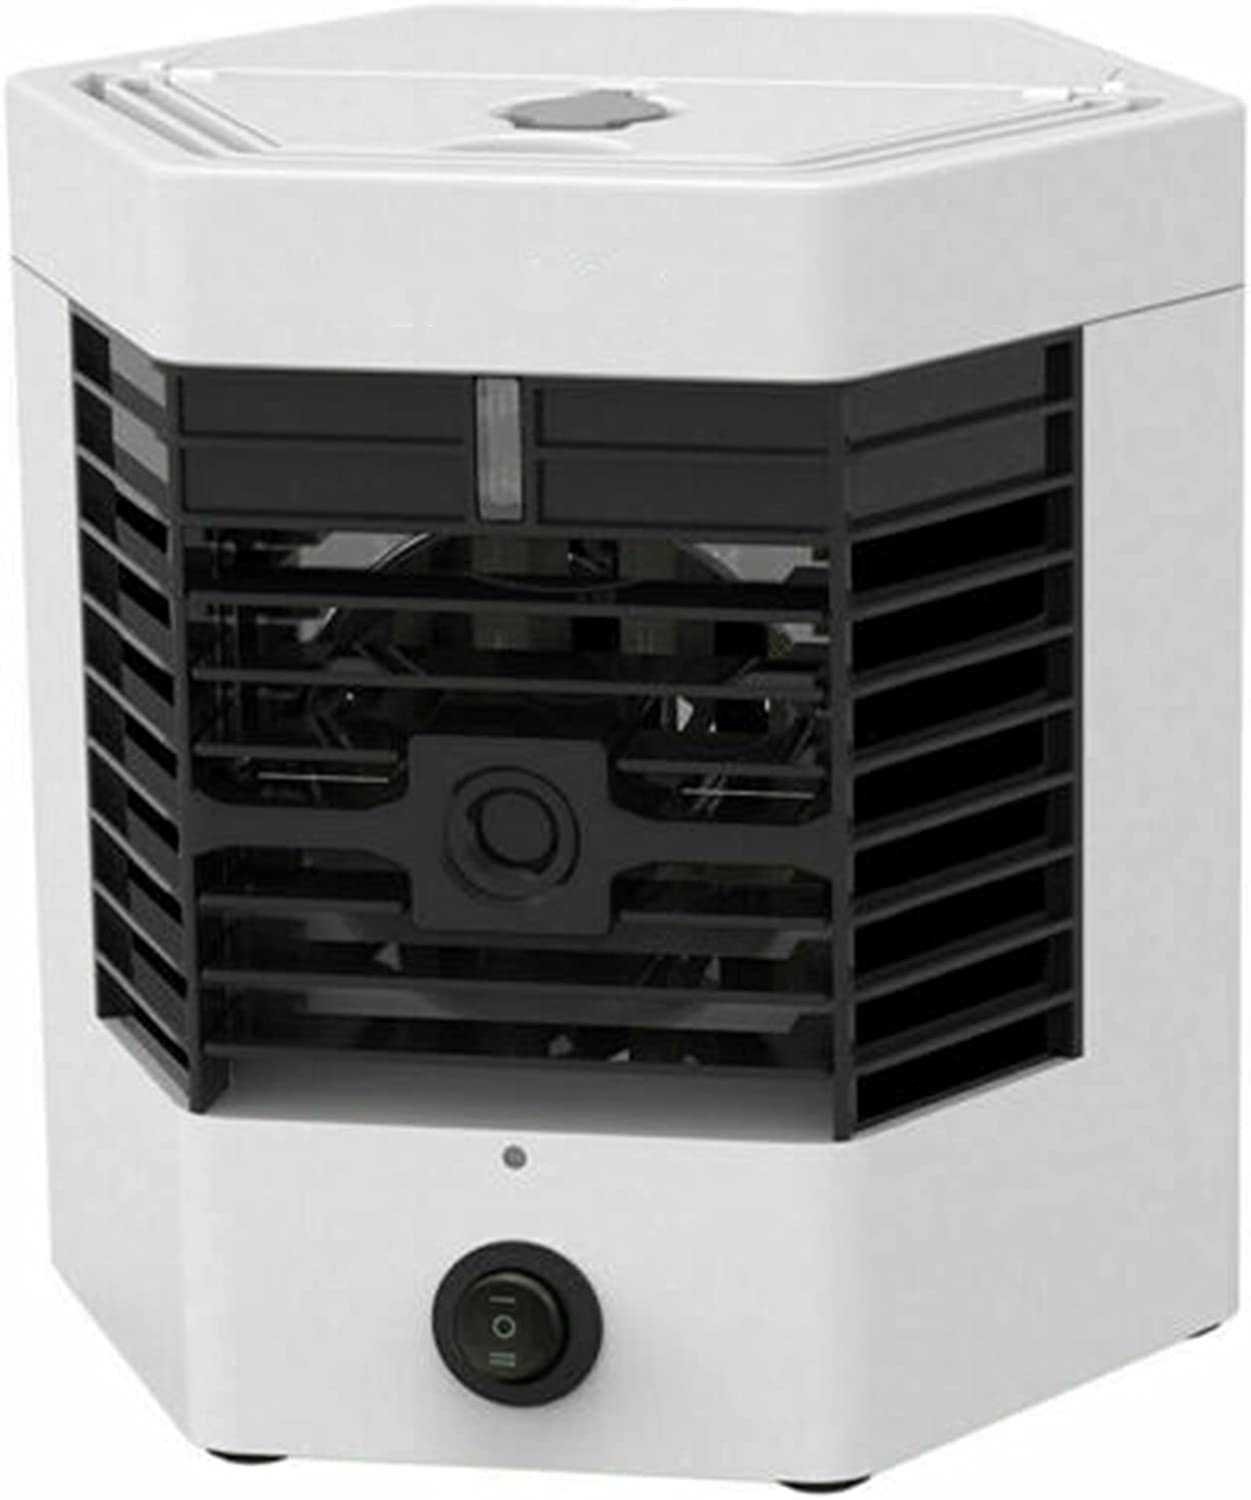 Max 58% OFF Raleigh Mall 01SHIRTS Portable Air Conditioner Fast Fan Personal Cooler